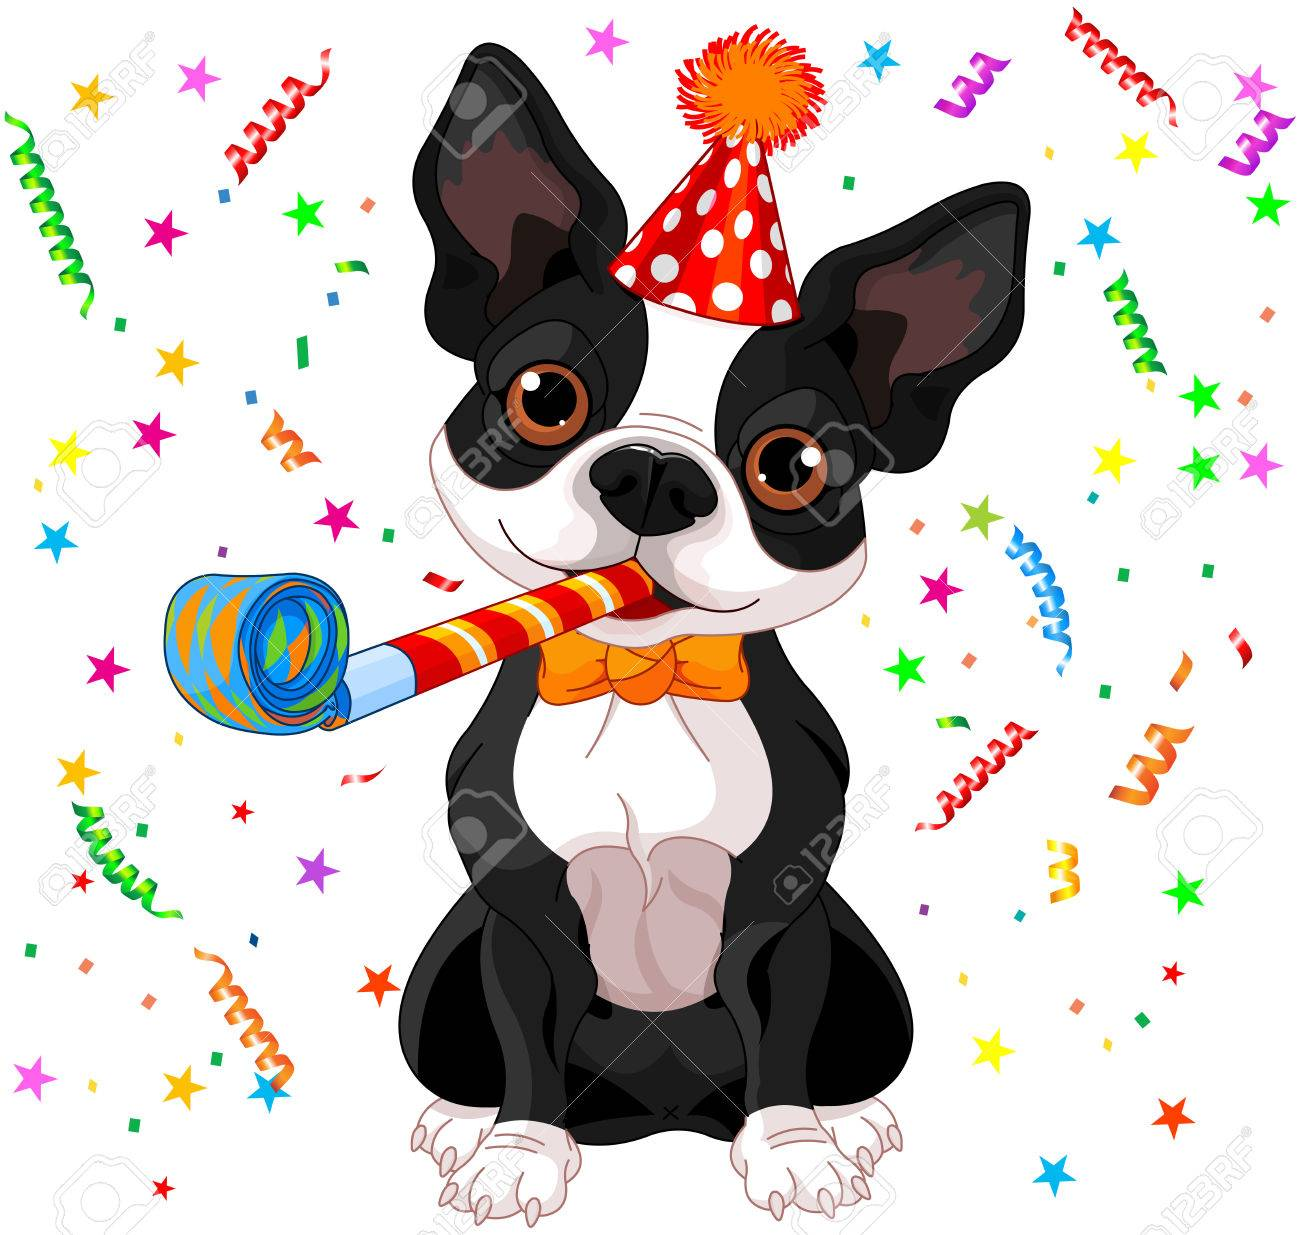 Balades Marnaises, Haut-Marnaises et Meusiennes [51-52-55] - Page 5 35588778-illustration-of-cute-boston-terrier-celebrating